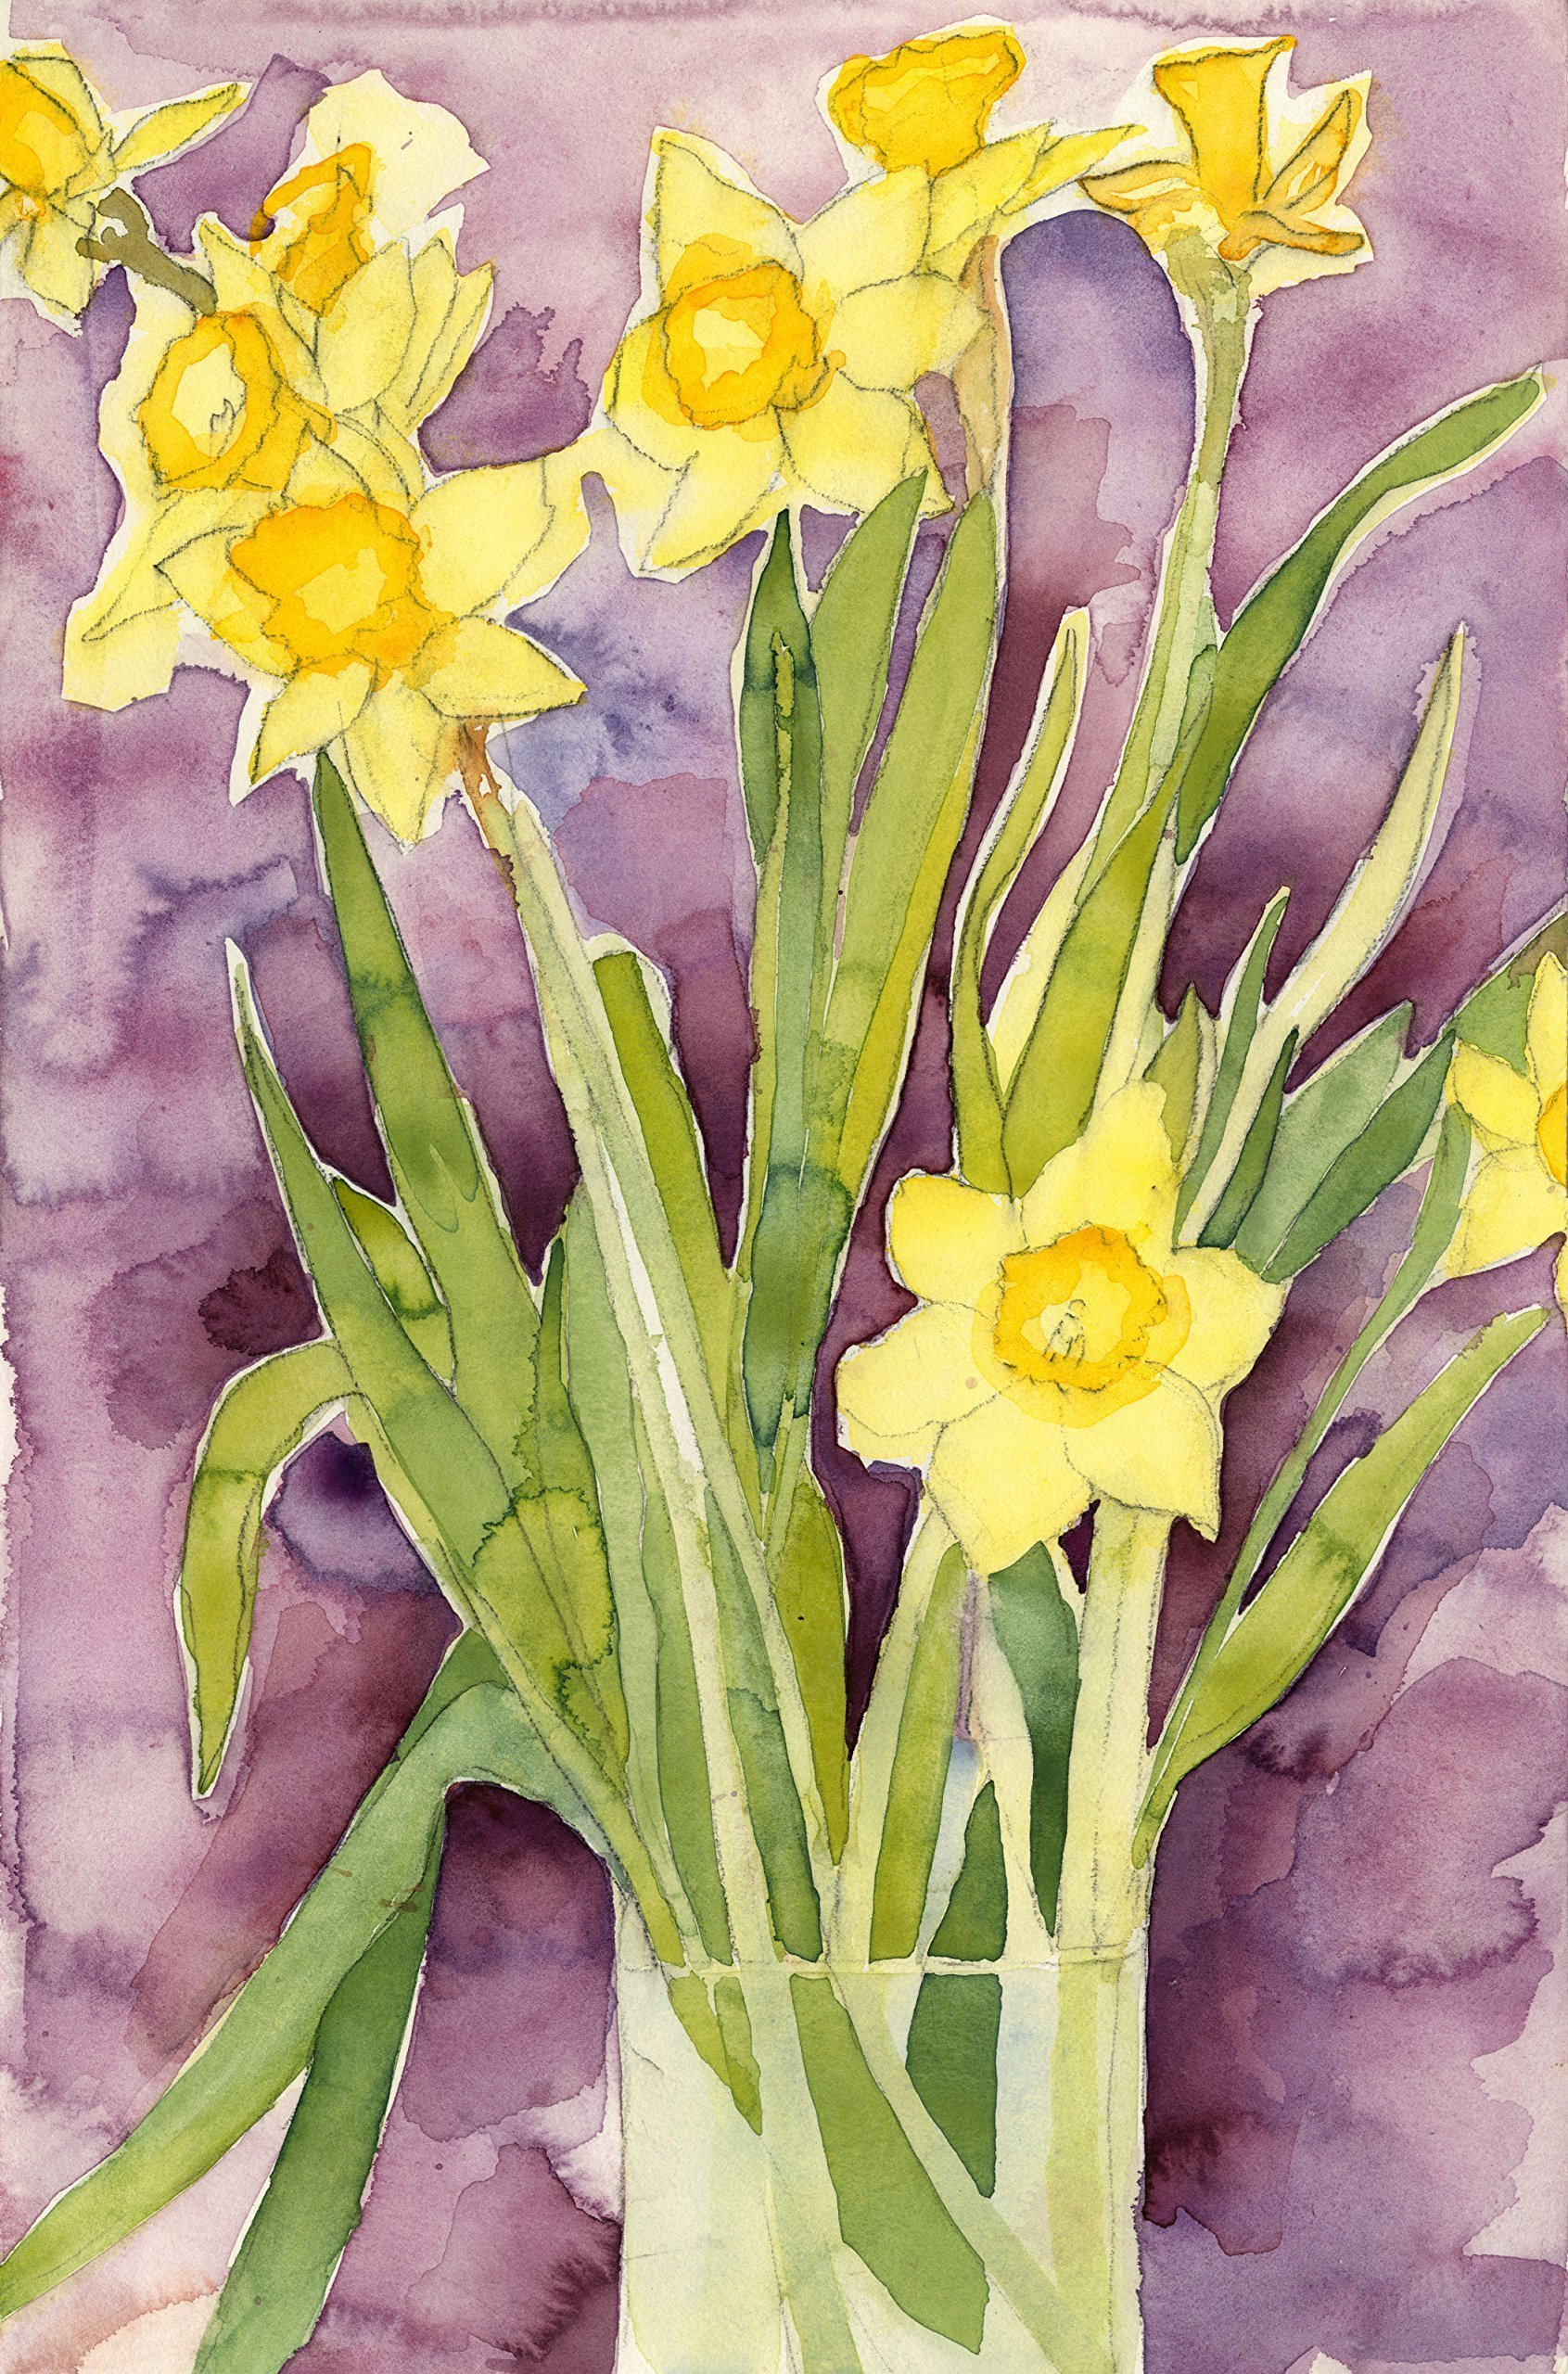 silk flower arrangements floral watercolor print - daffodils - fine art painting, wall decor, gift